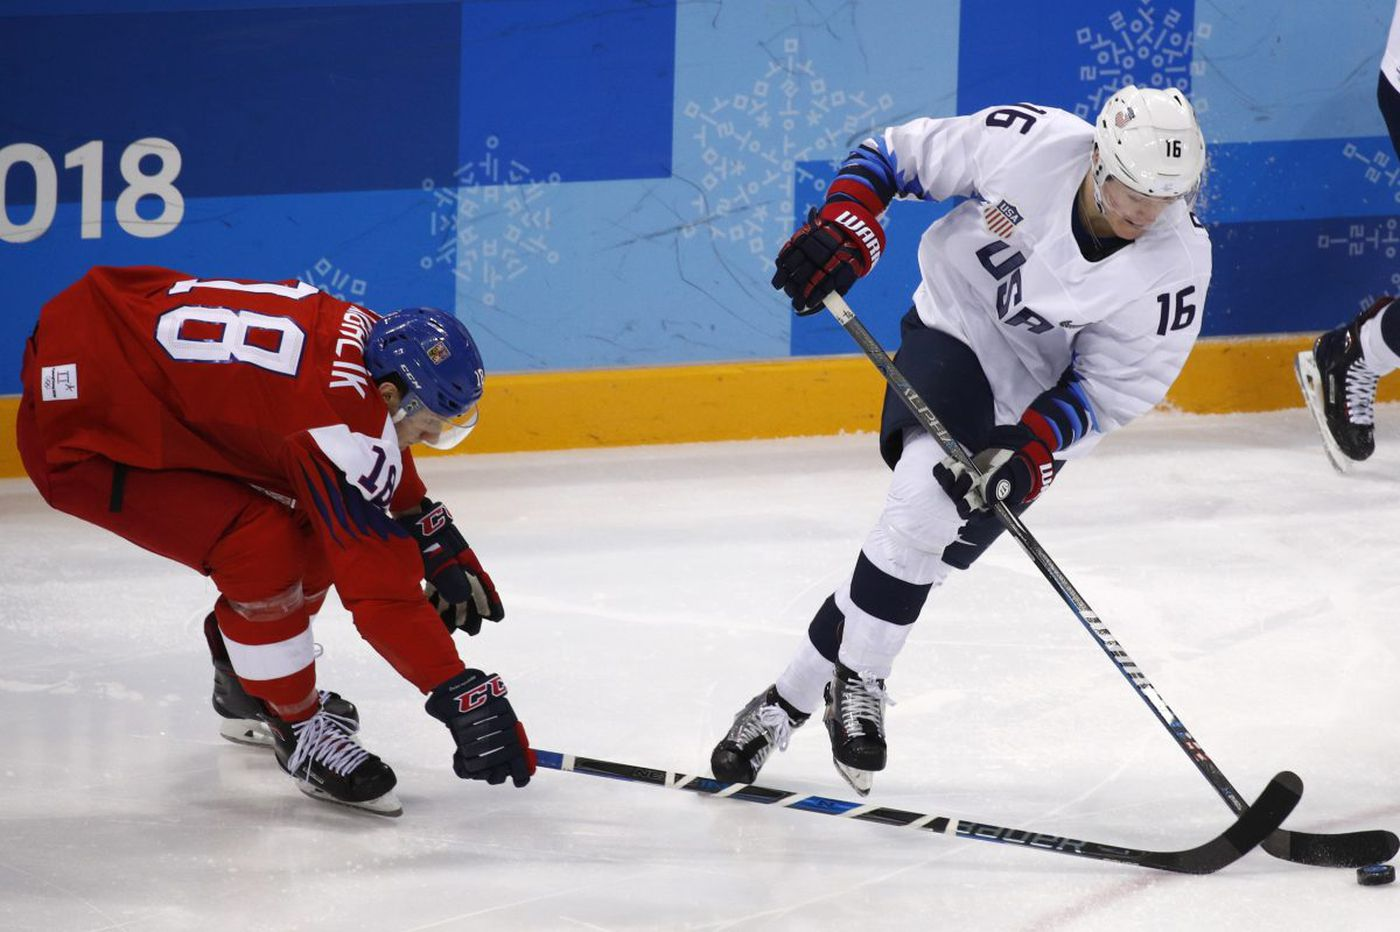 Without NHL, Olympic hockey barely made a sound | Sam Donnellon